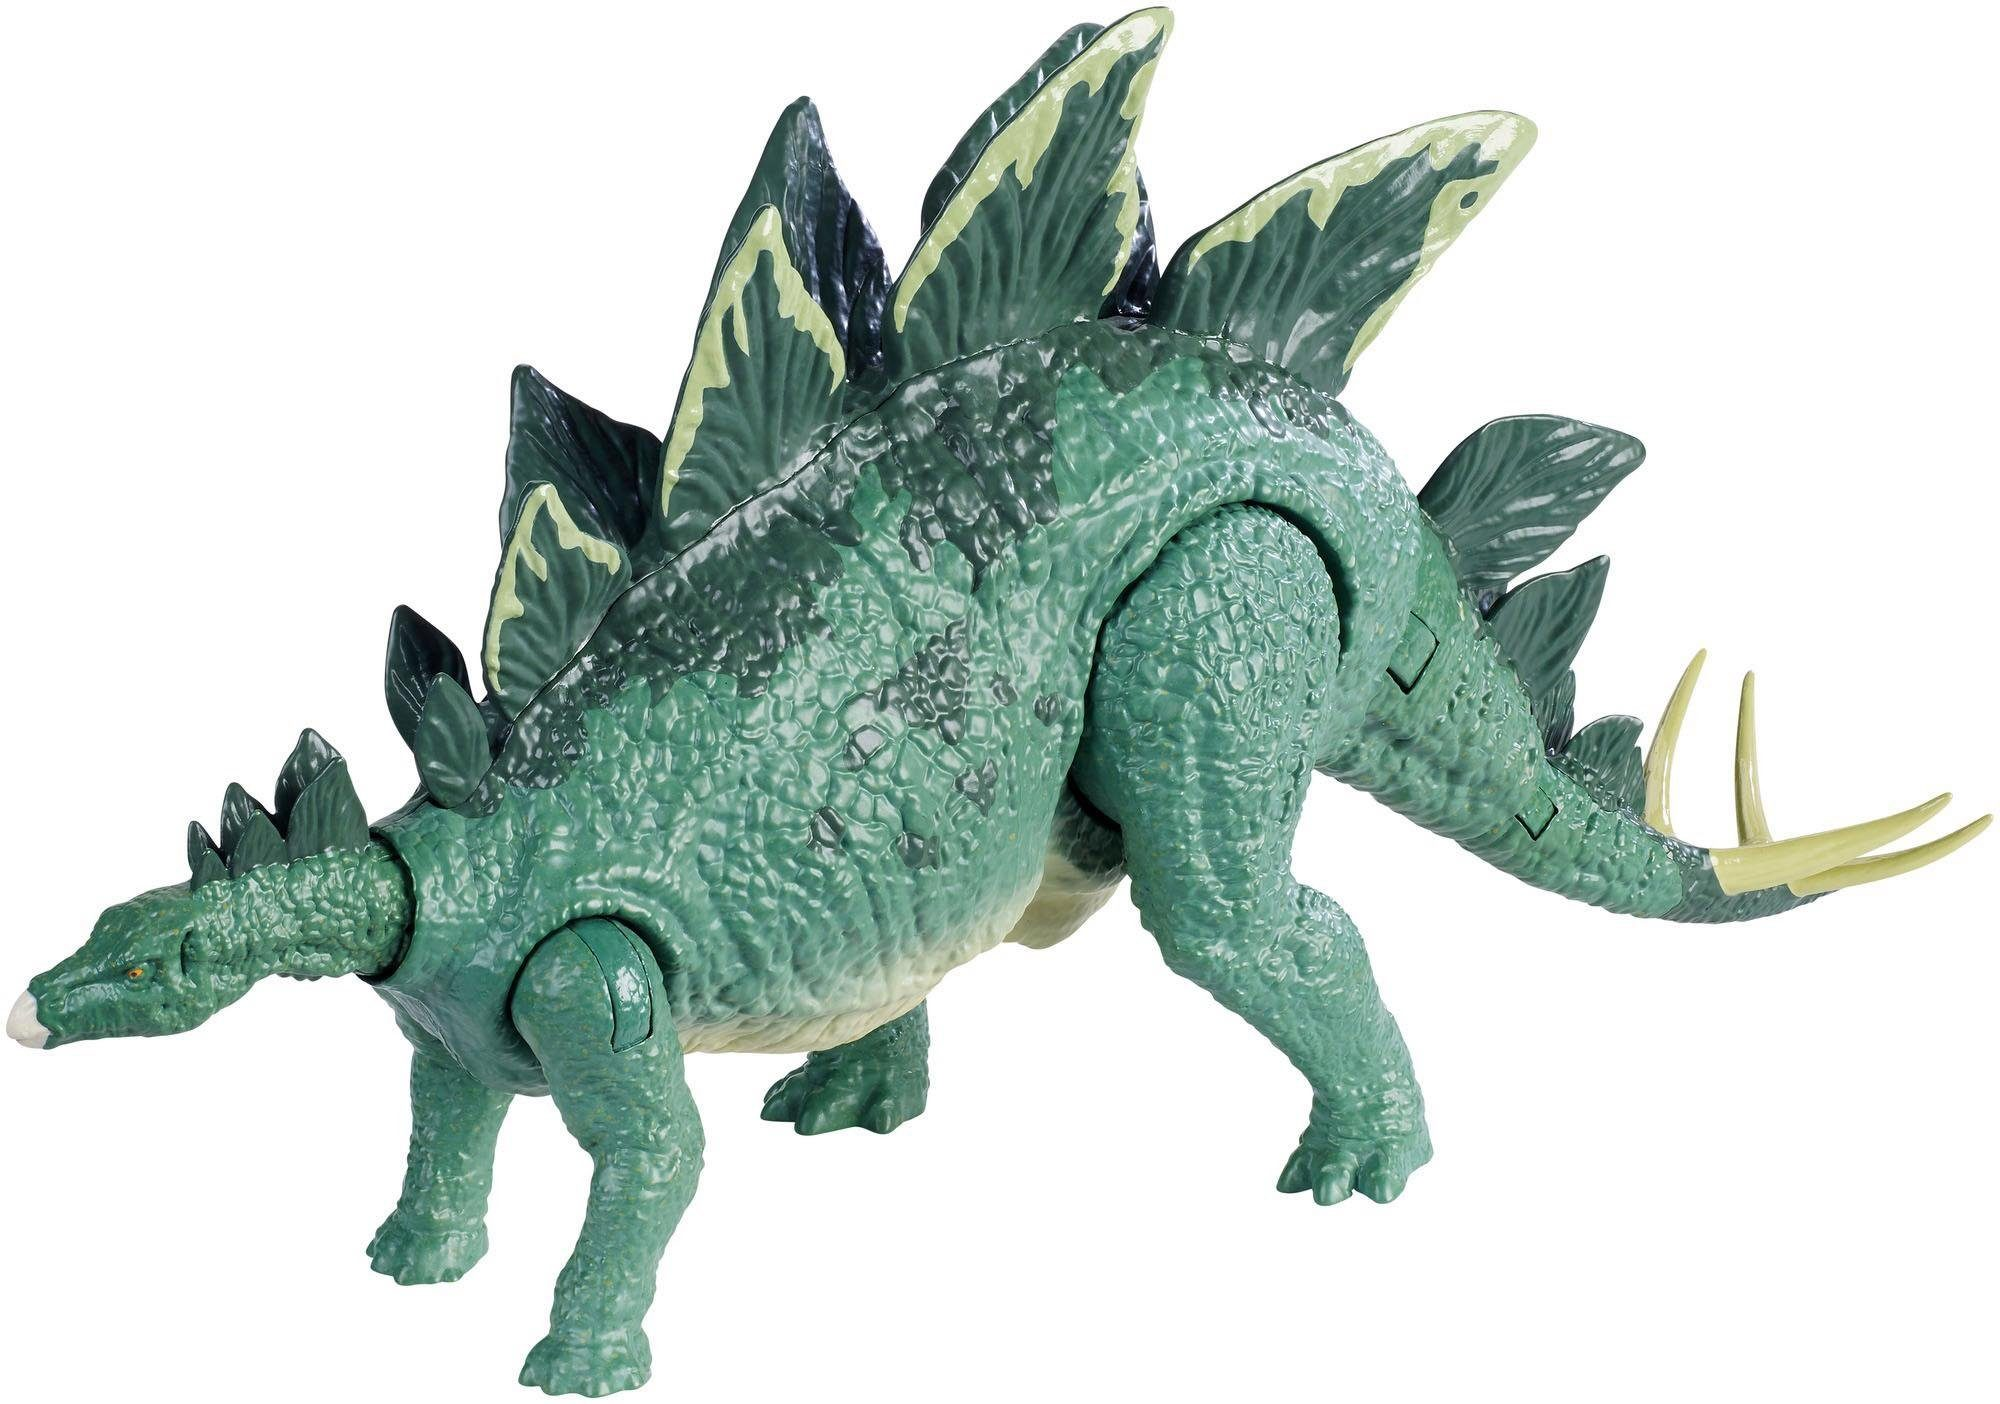 Mattel Spielfigur, »Jurassic World Action-Attacke Stegosaurus«